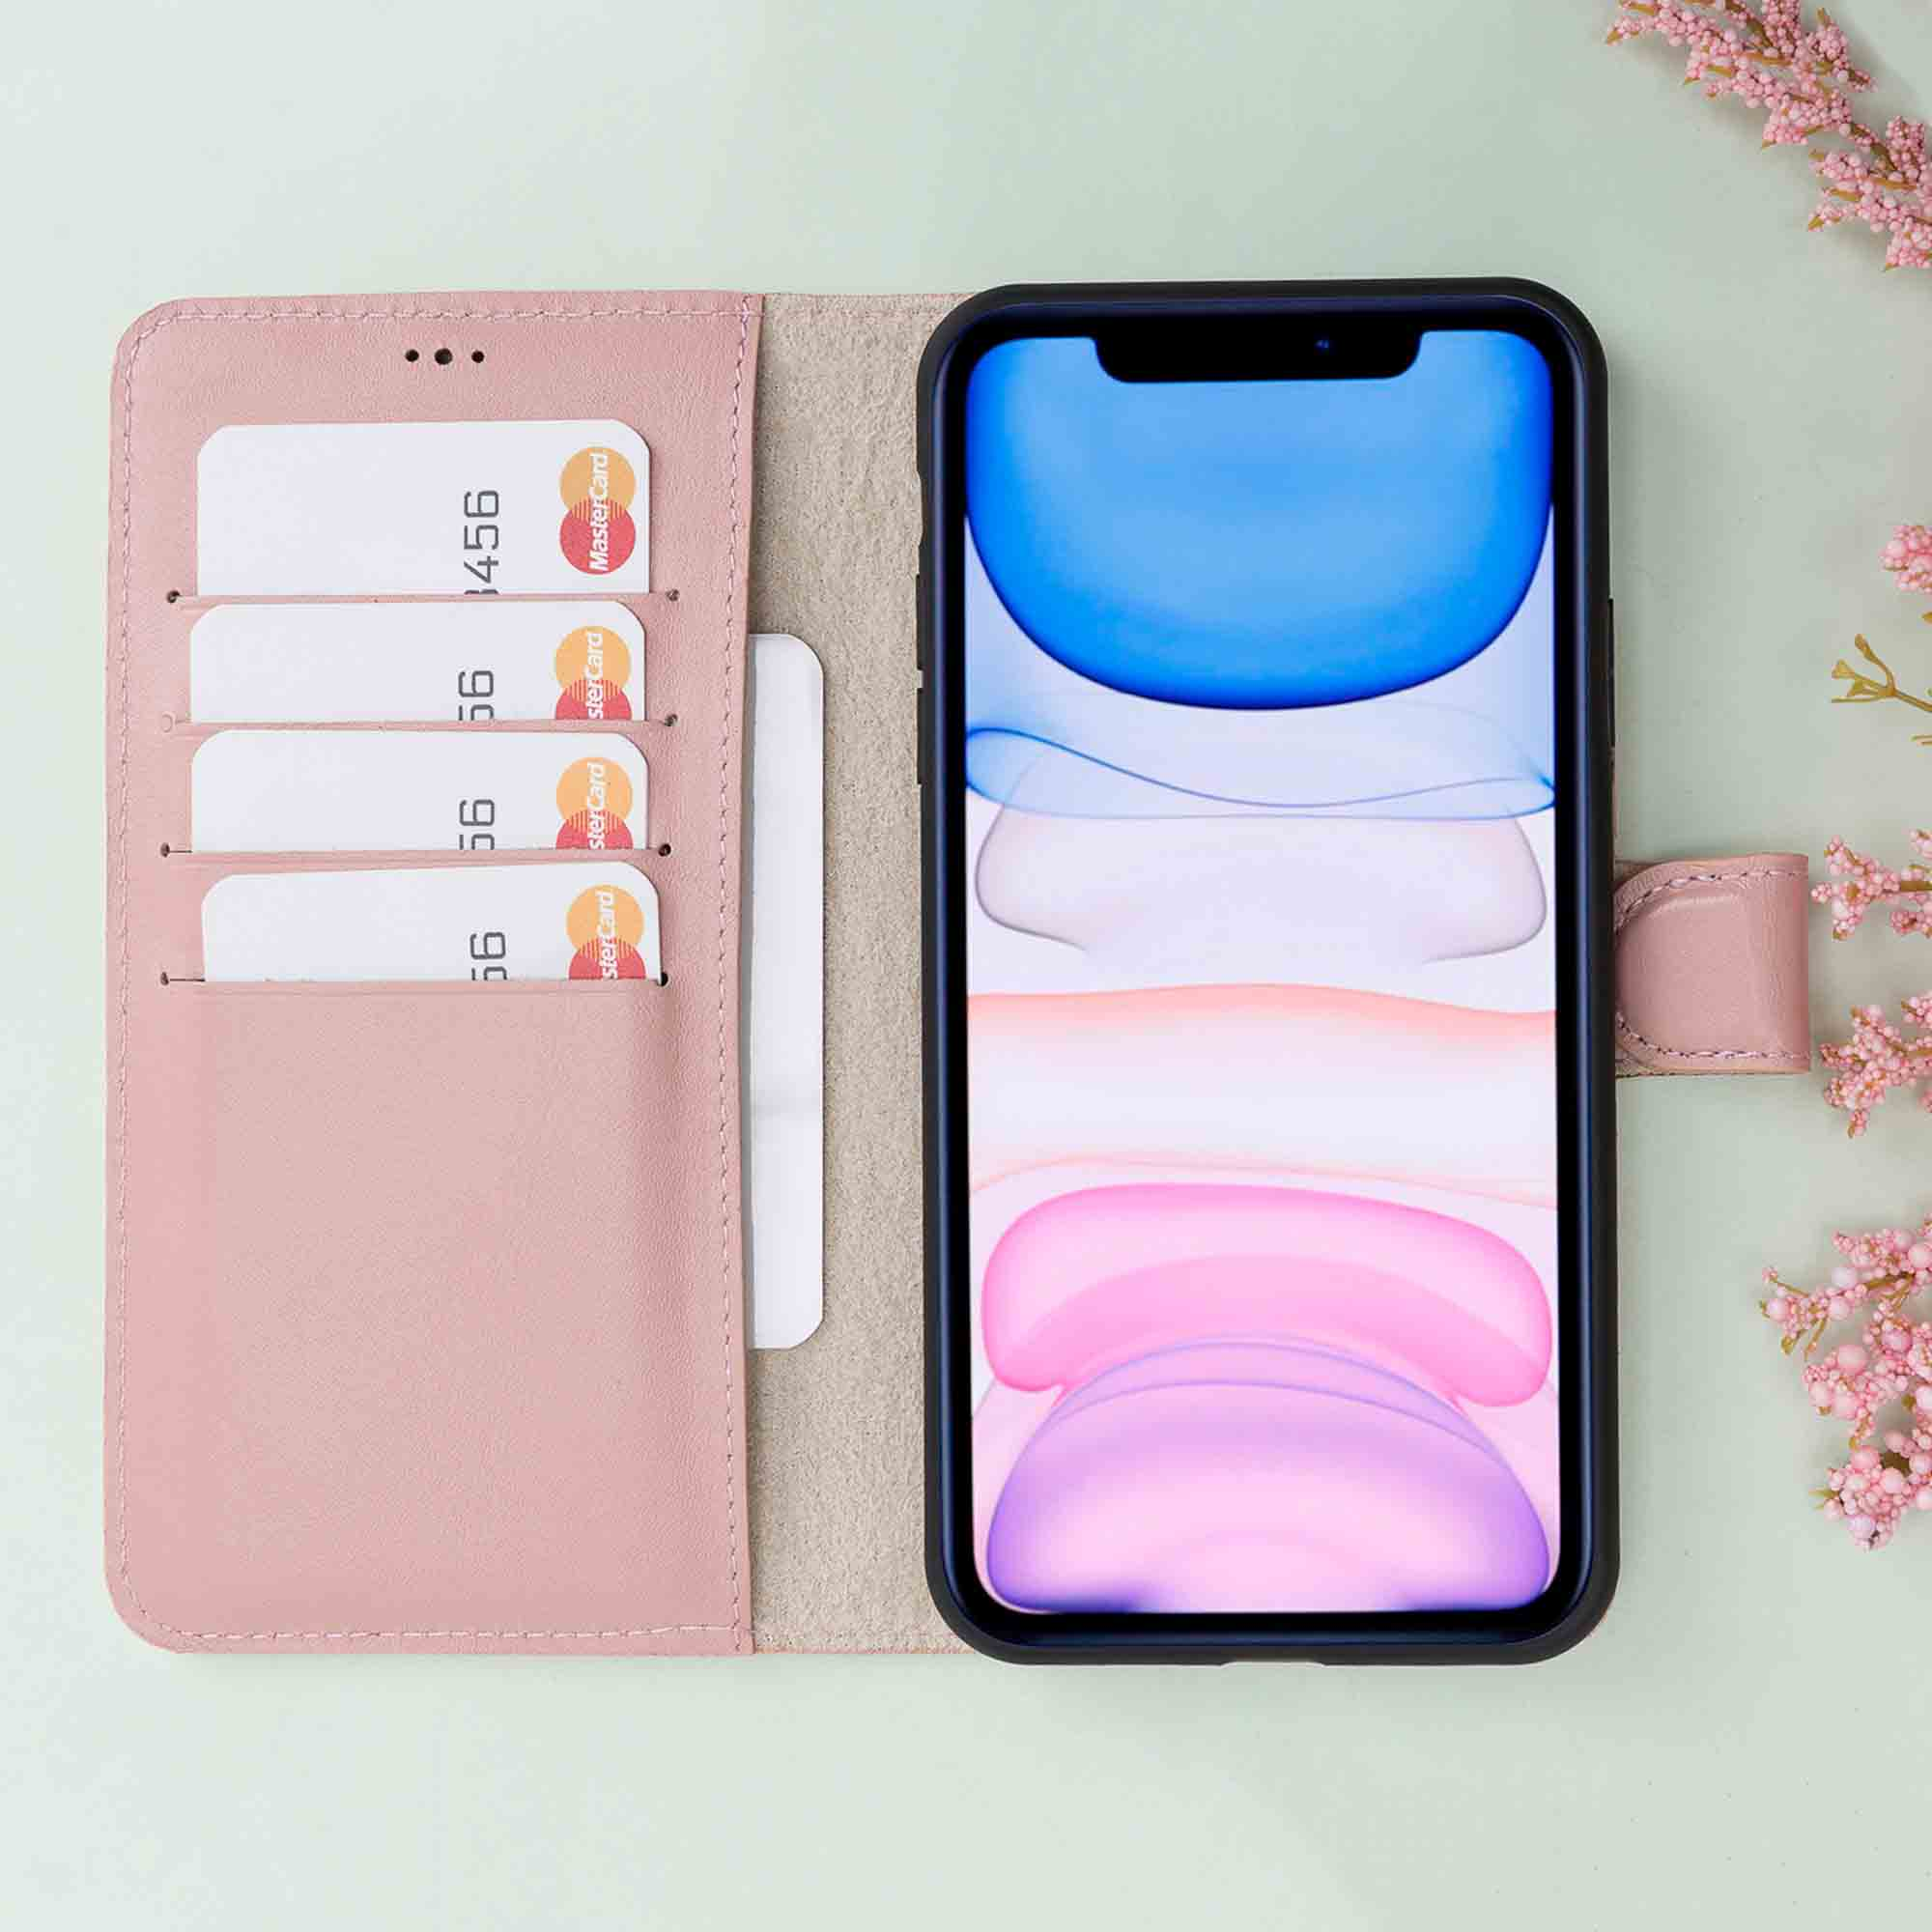 Magic Magnetic Detachable Leather Wallet Case for iPhone 11 Pro Max (6.5